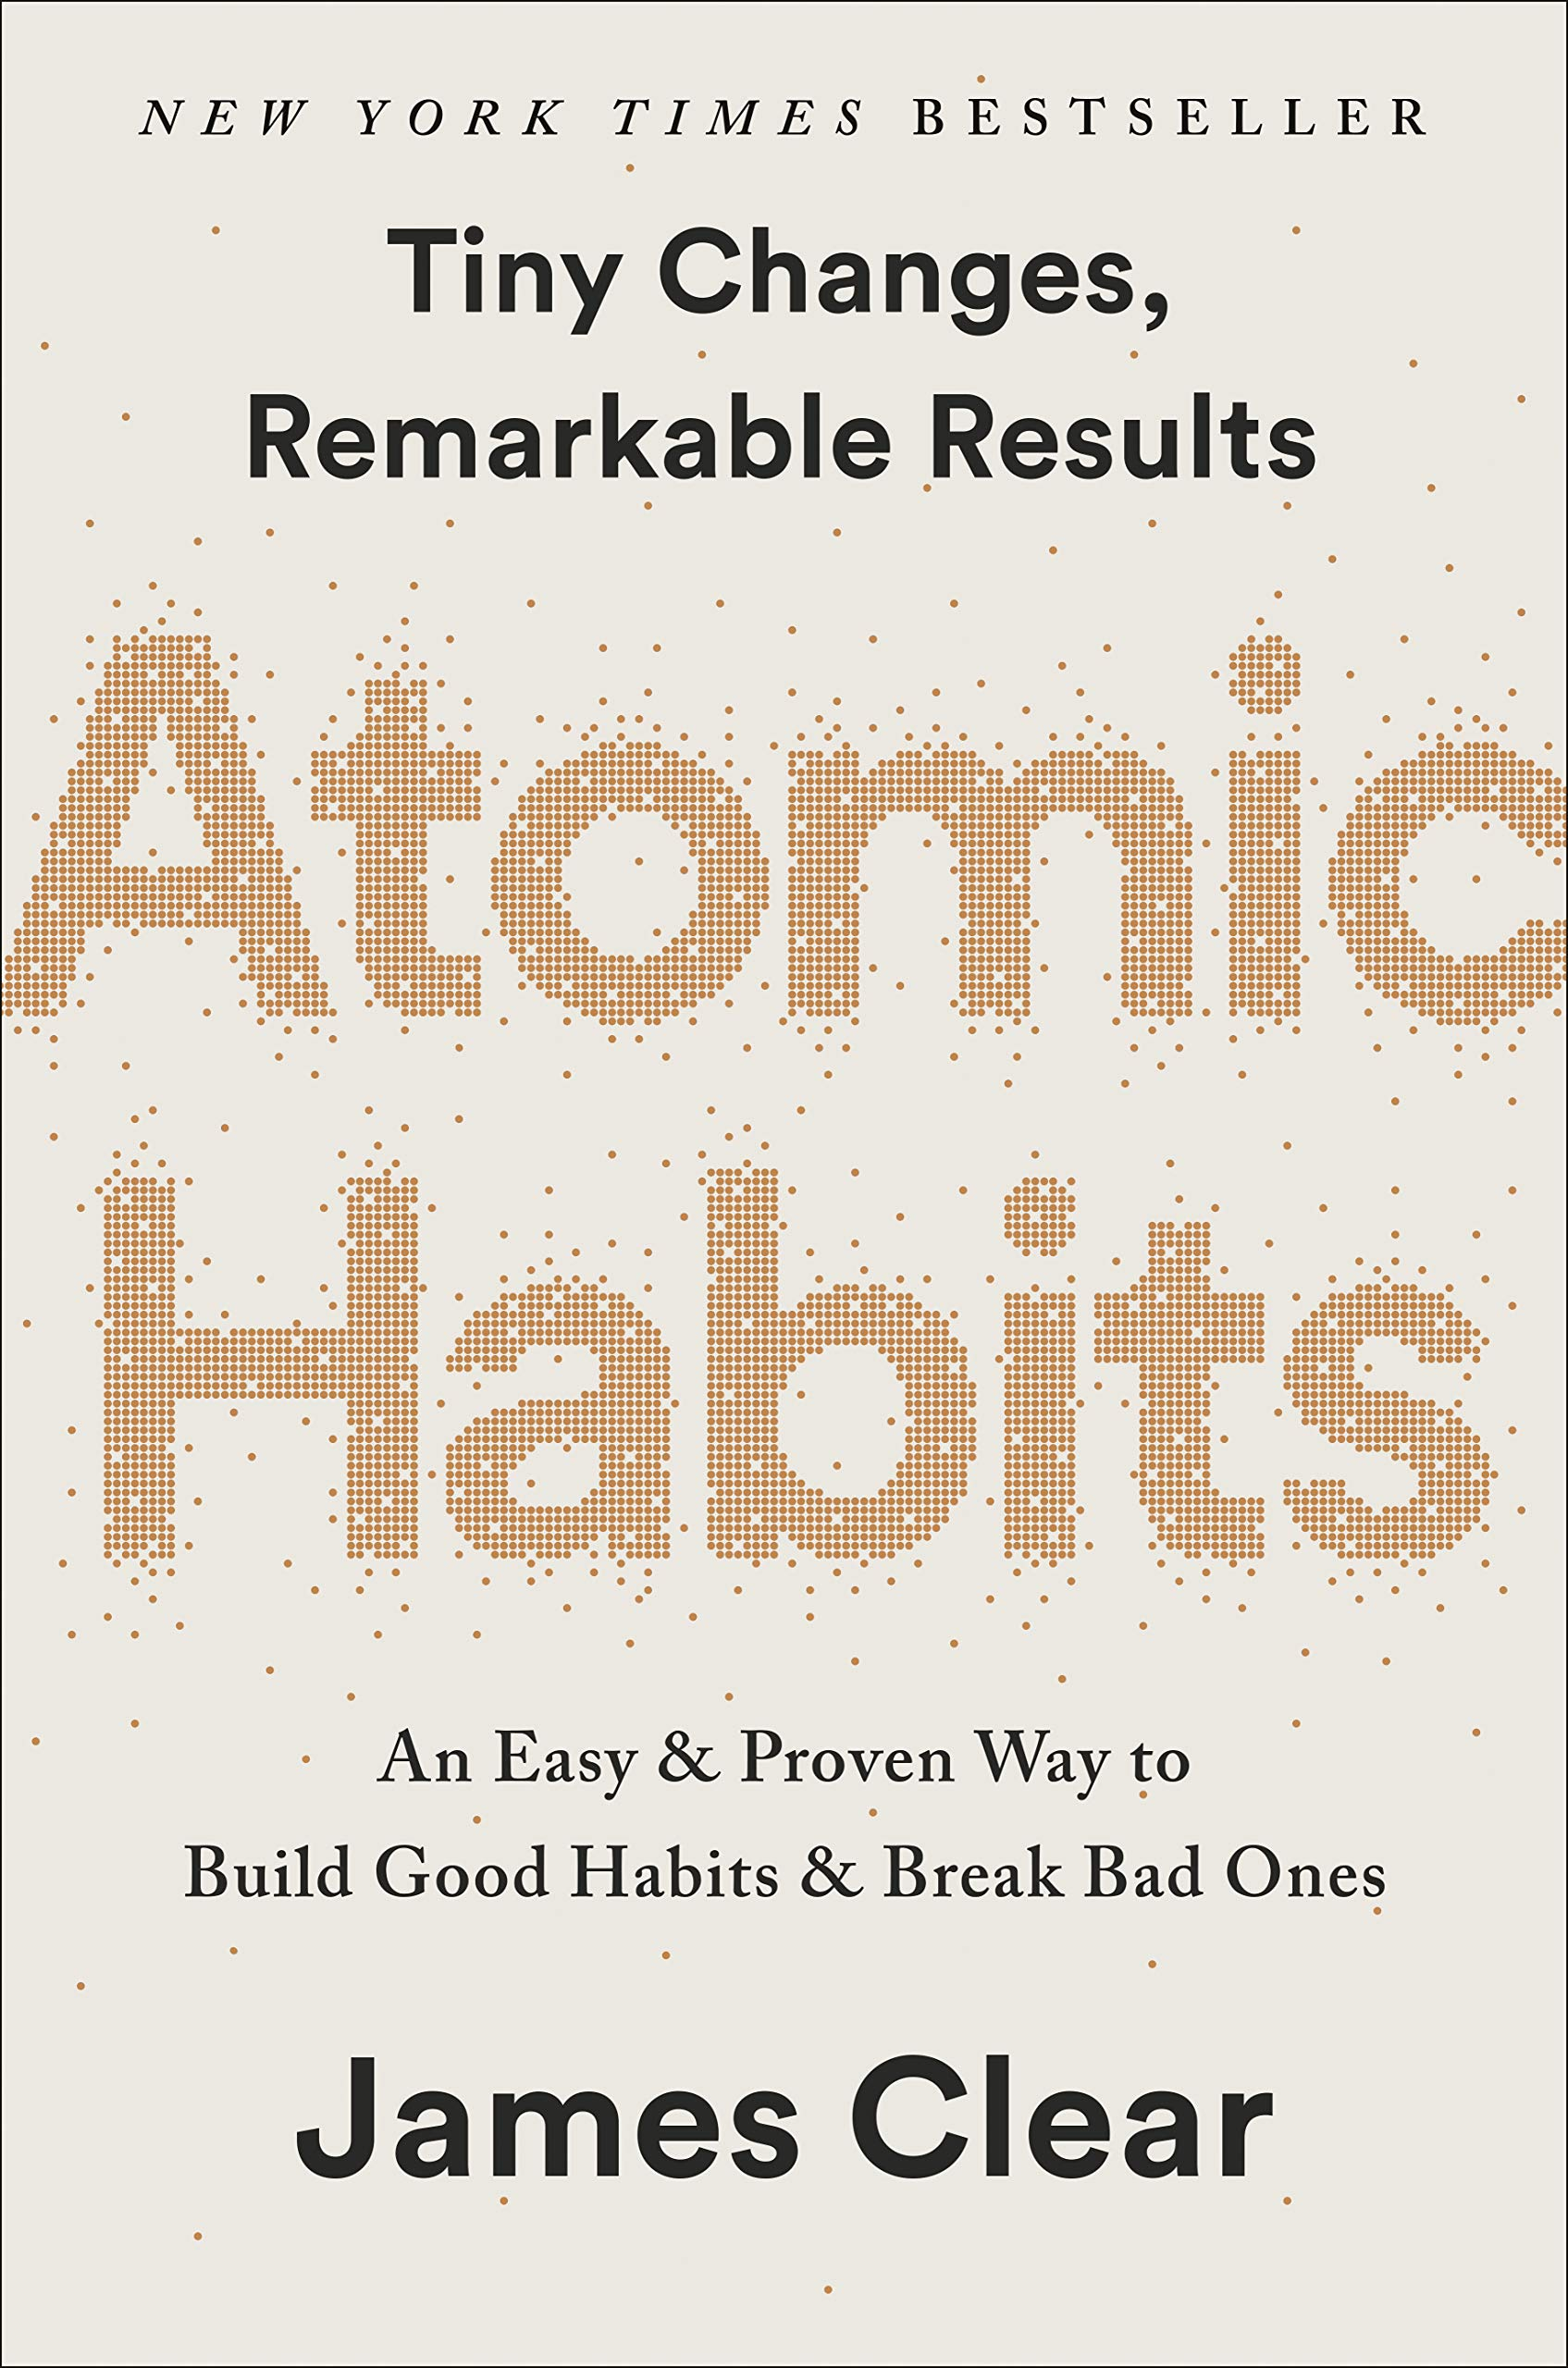 atomic-habits-an-easy--proven-way-to-build-good-habits--break-bad-ones-by-james-clear